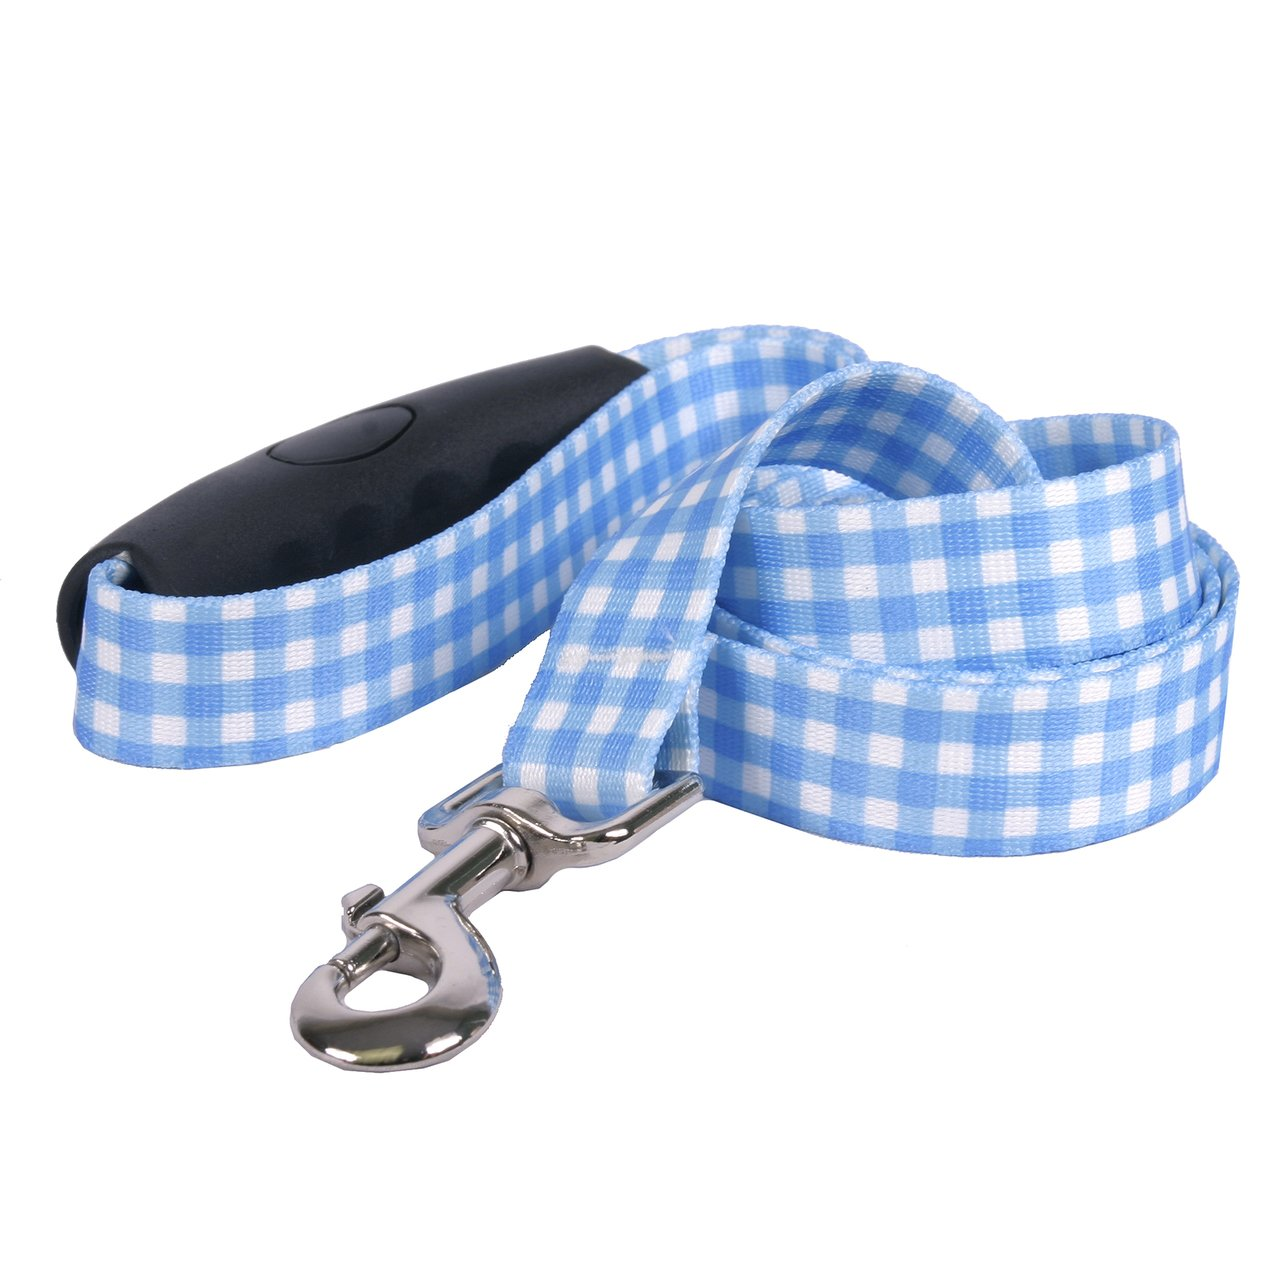 3 4\ Southern Dawg Gingham bluee Dog Leash with Comfort Grip Handle-Medium-3 4  and 5' (60 ) Made in the USA by Yellow Dog Design